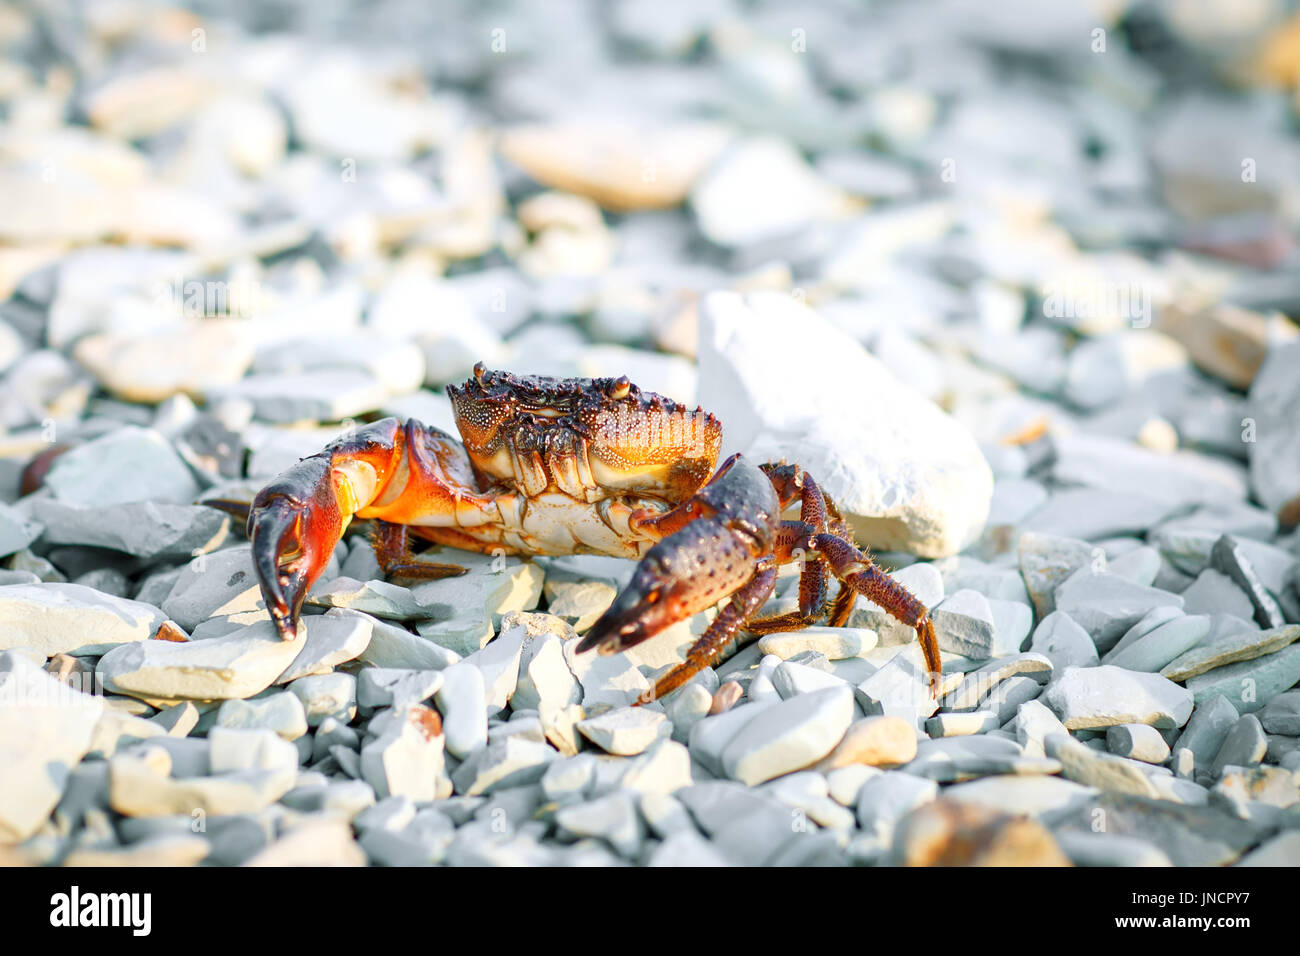 Sea crab on the rocky shore of the sea. Stock Photo